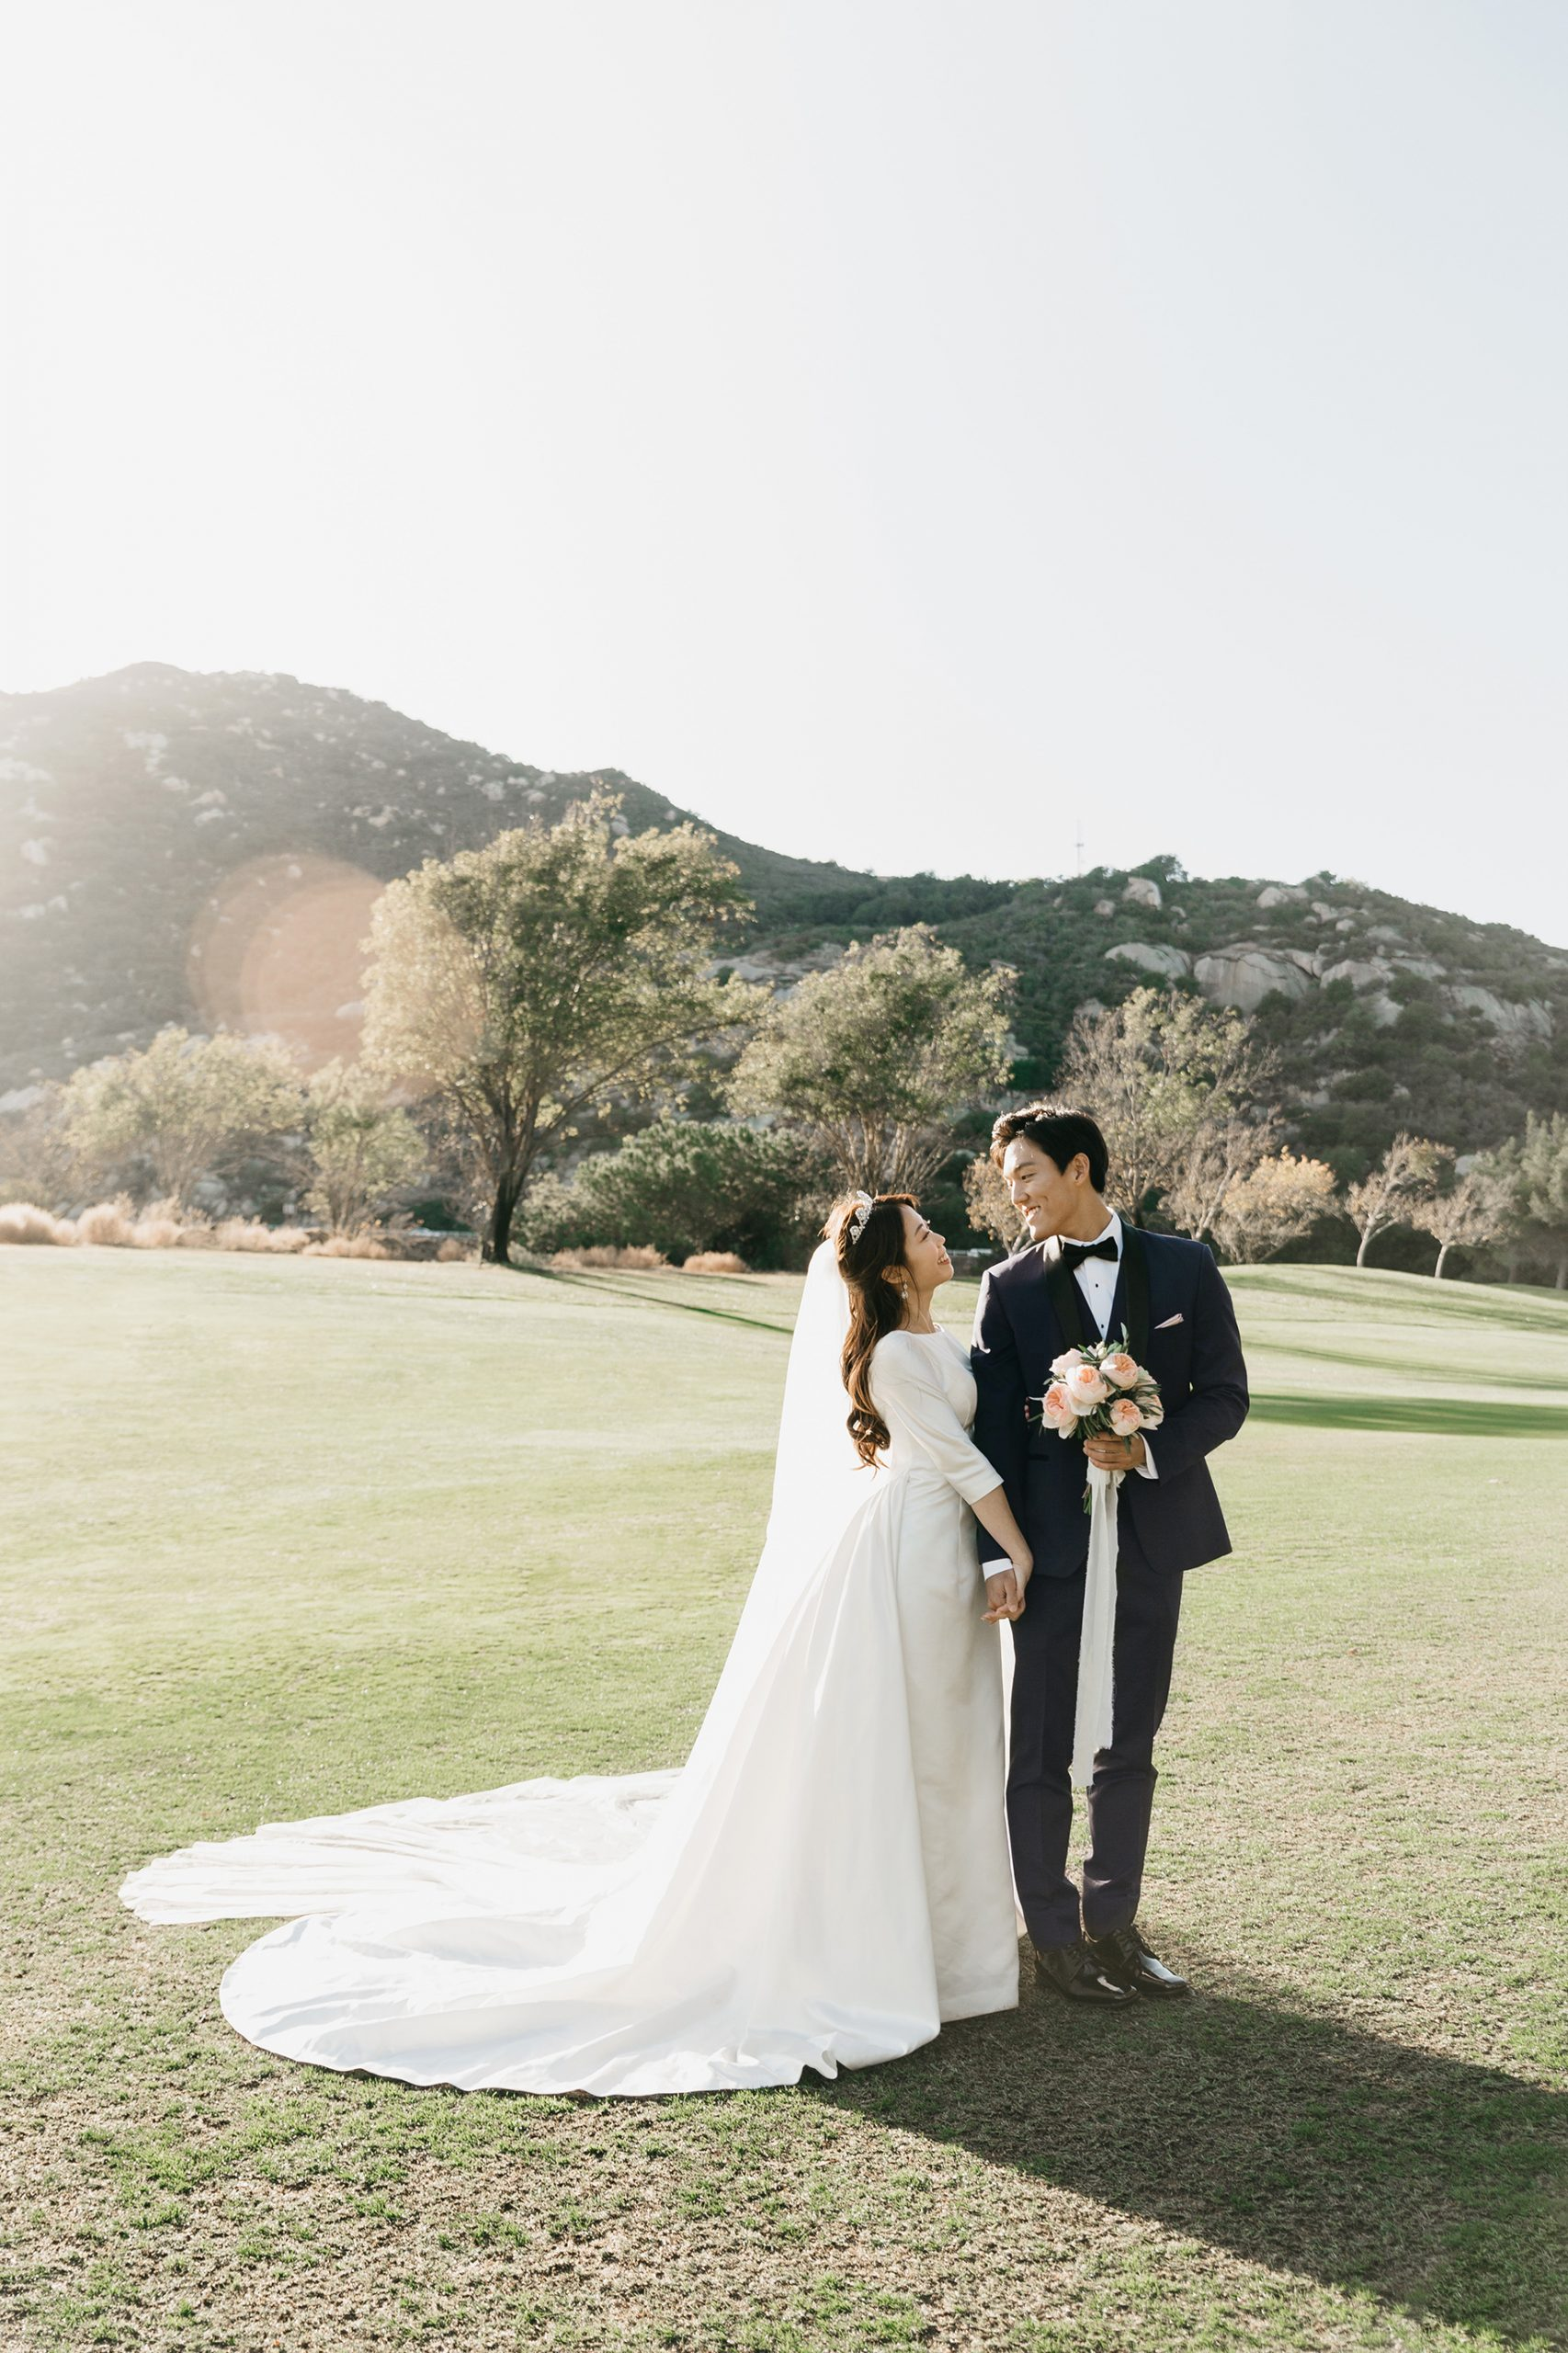 Fall Wedding at the Temecula Creek Inn